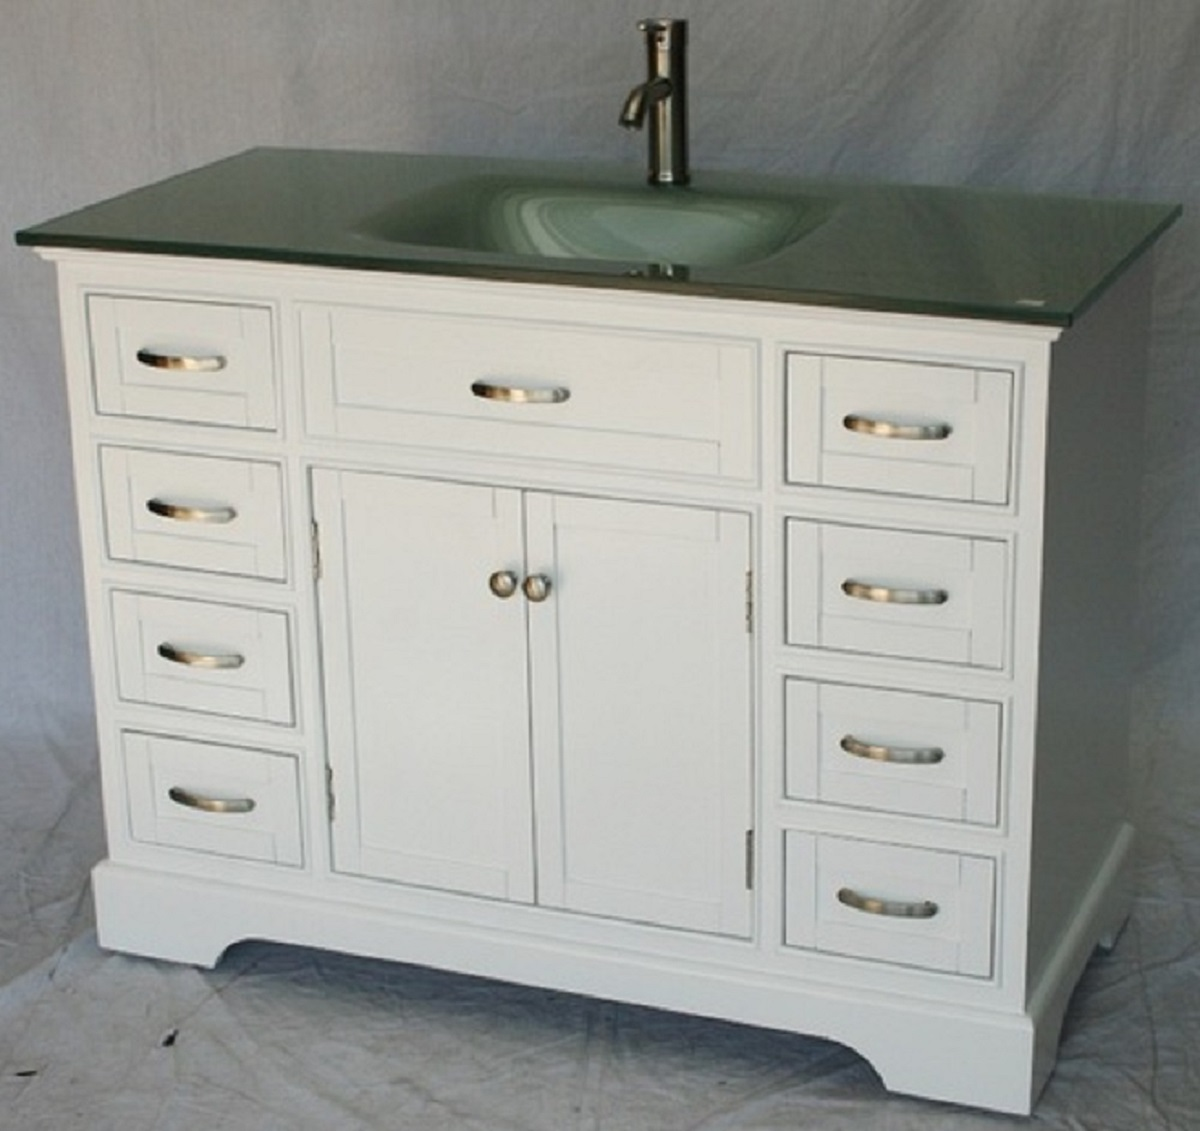 46 inch bathroom vanity transitional shaker white color with glass top 46 wx21 dx35 h s2422w. Black Bedroom Furniture Sets. Home Design Ideas